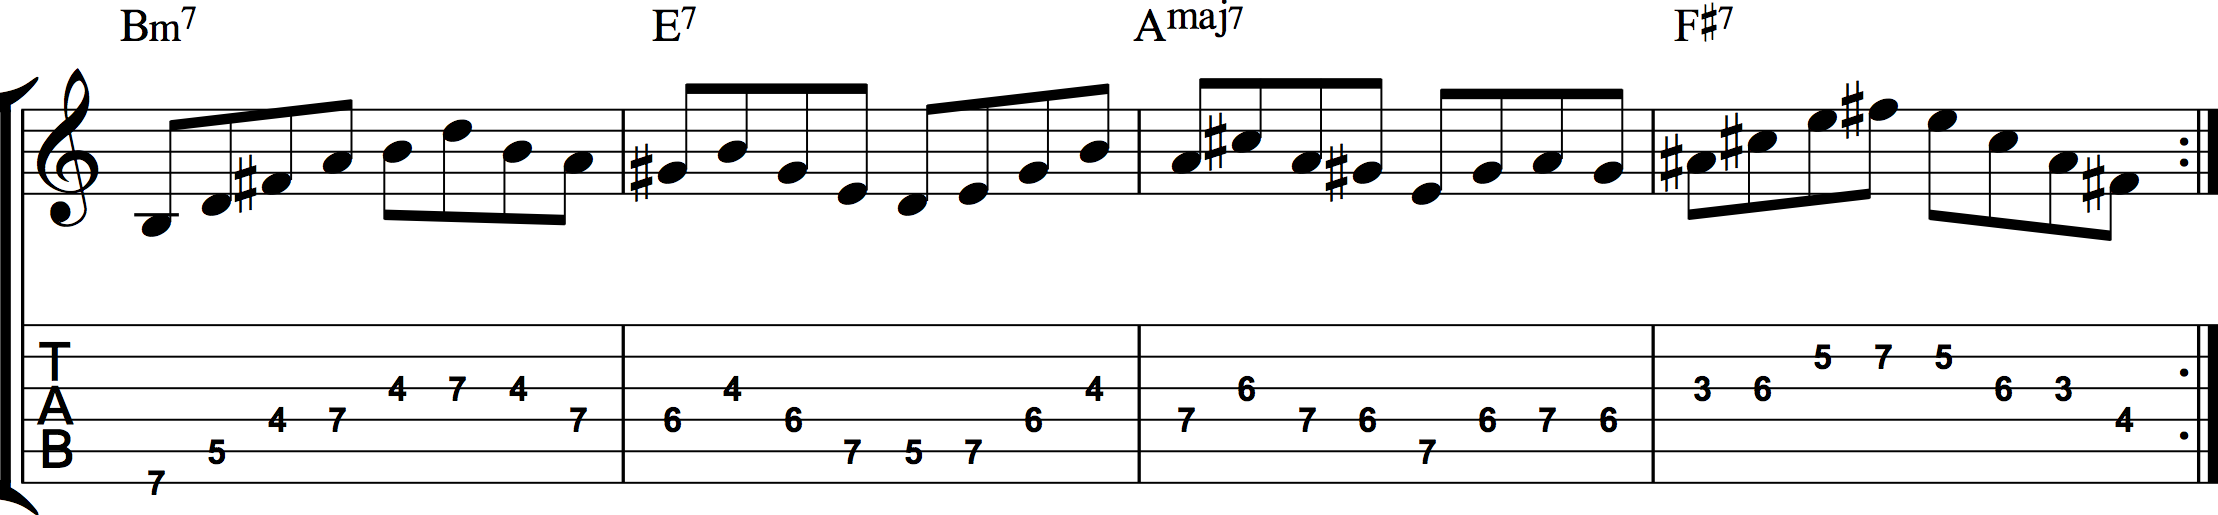 Using Arpeggios Over A Basic Chord Progression Online Guitar Books